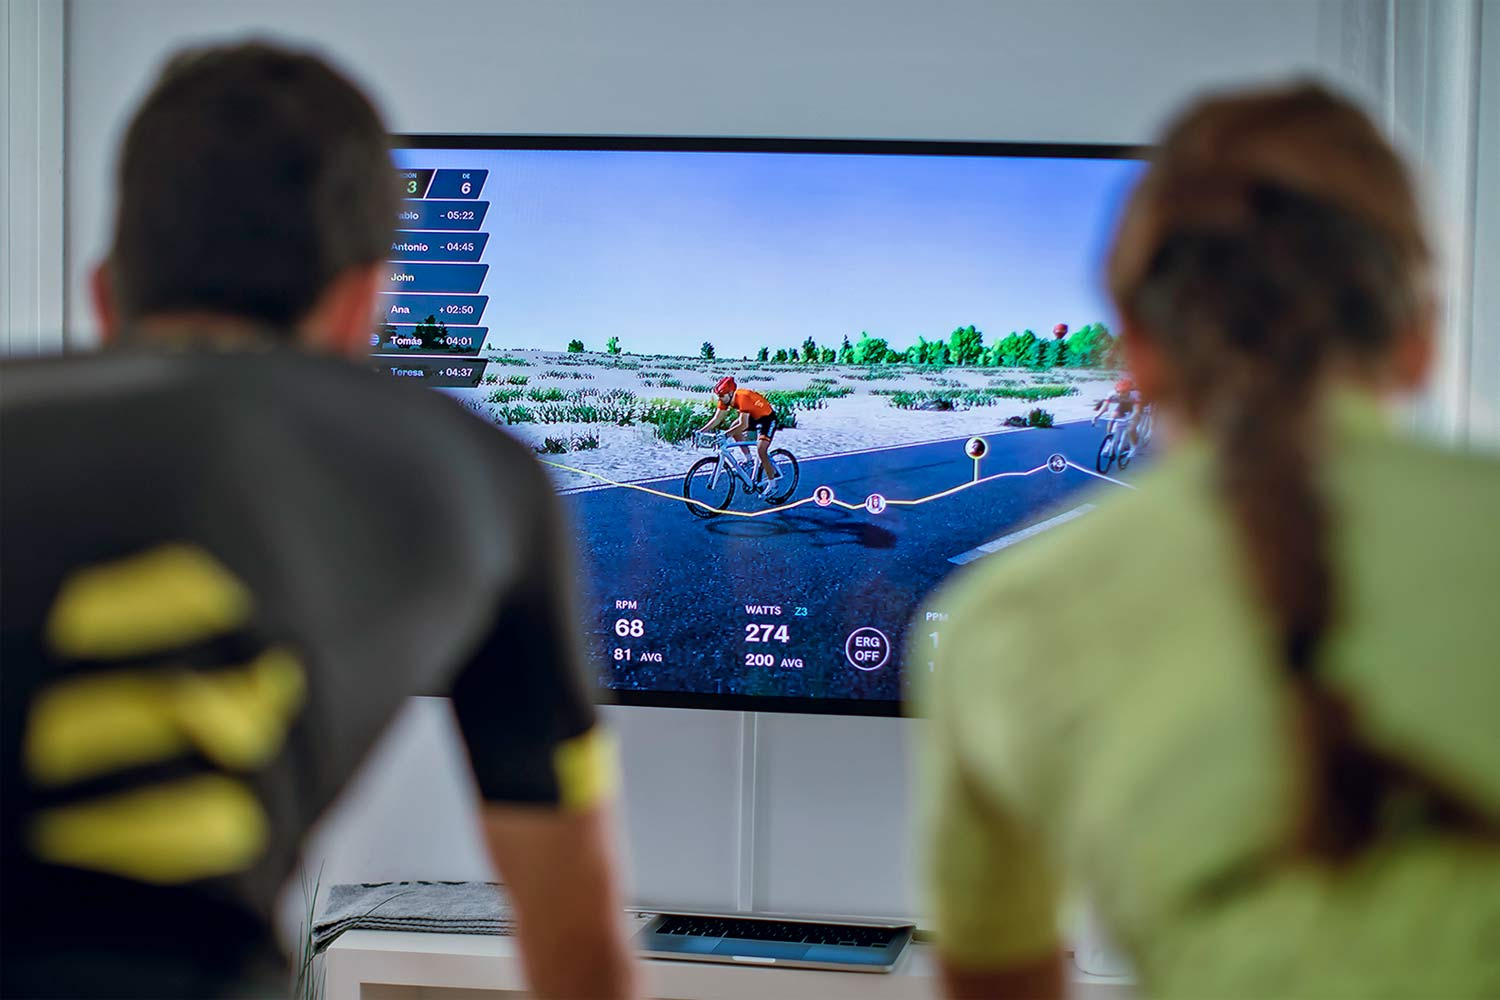 Bkool updates virtual training app, so you get more cycling indoors this winter